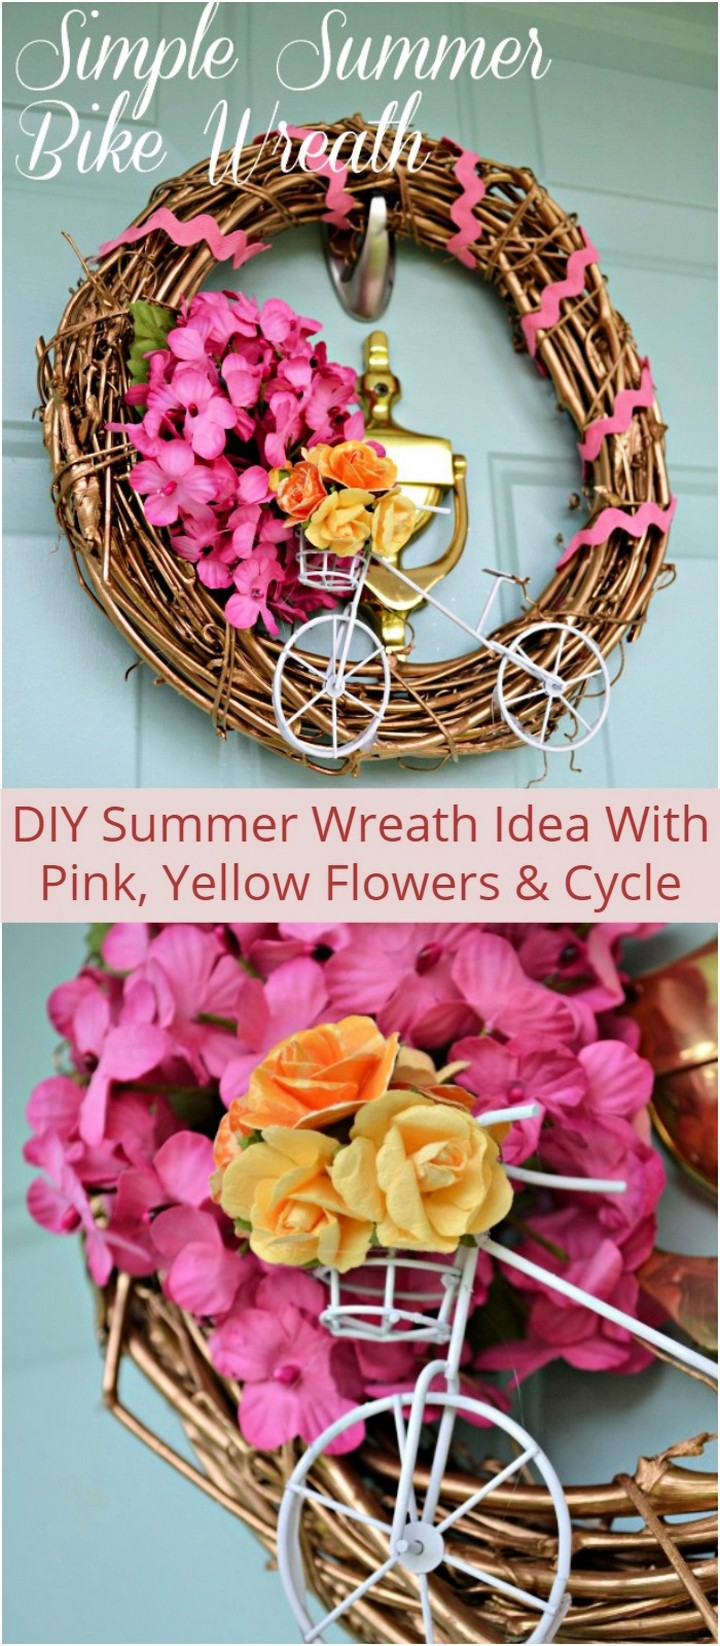 DIY Summer Wreath Idea With Pink Yellow Flowers Cycle